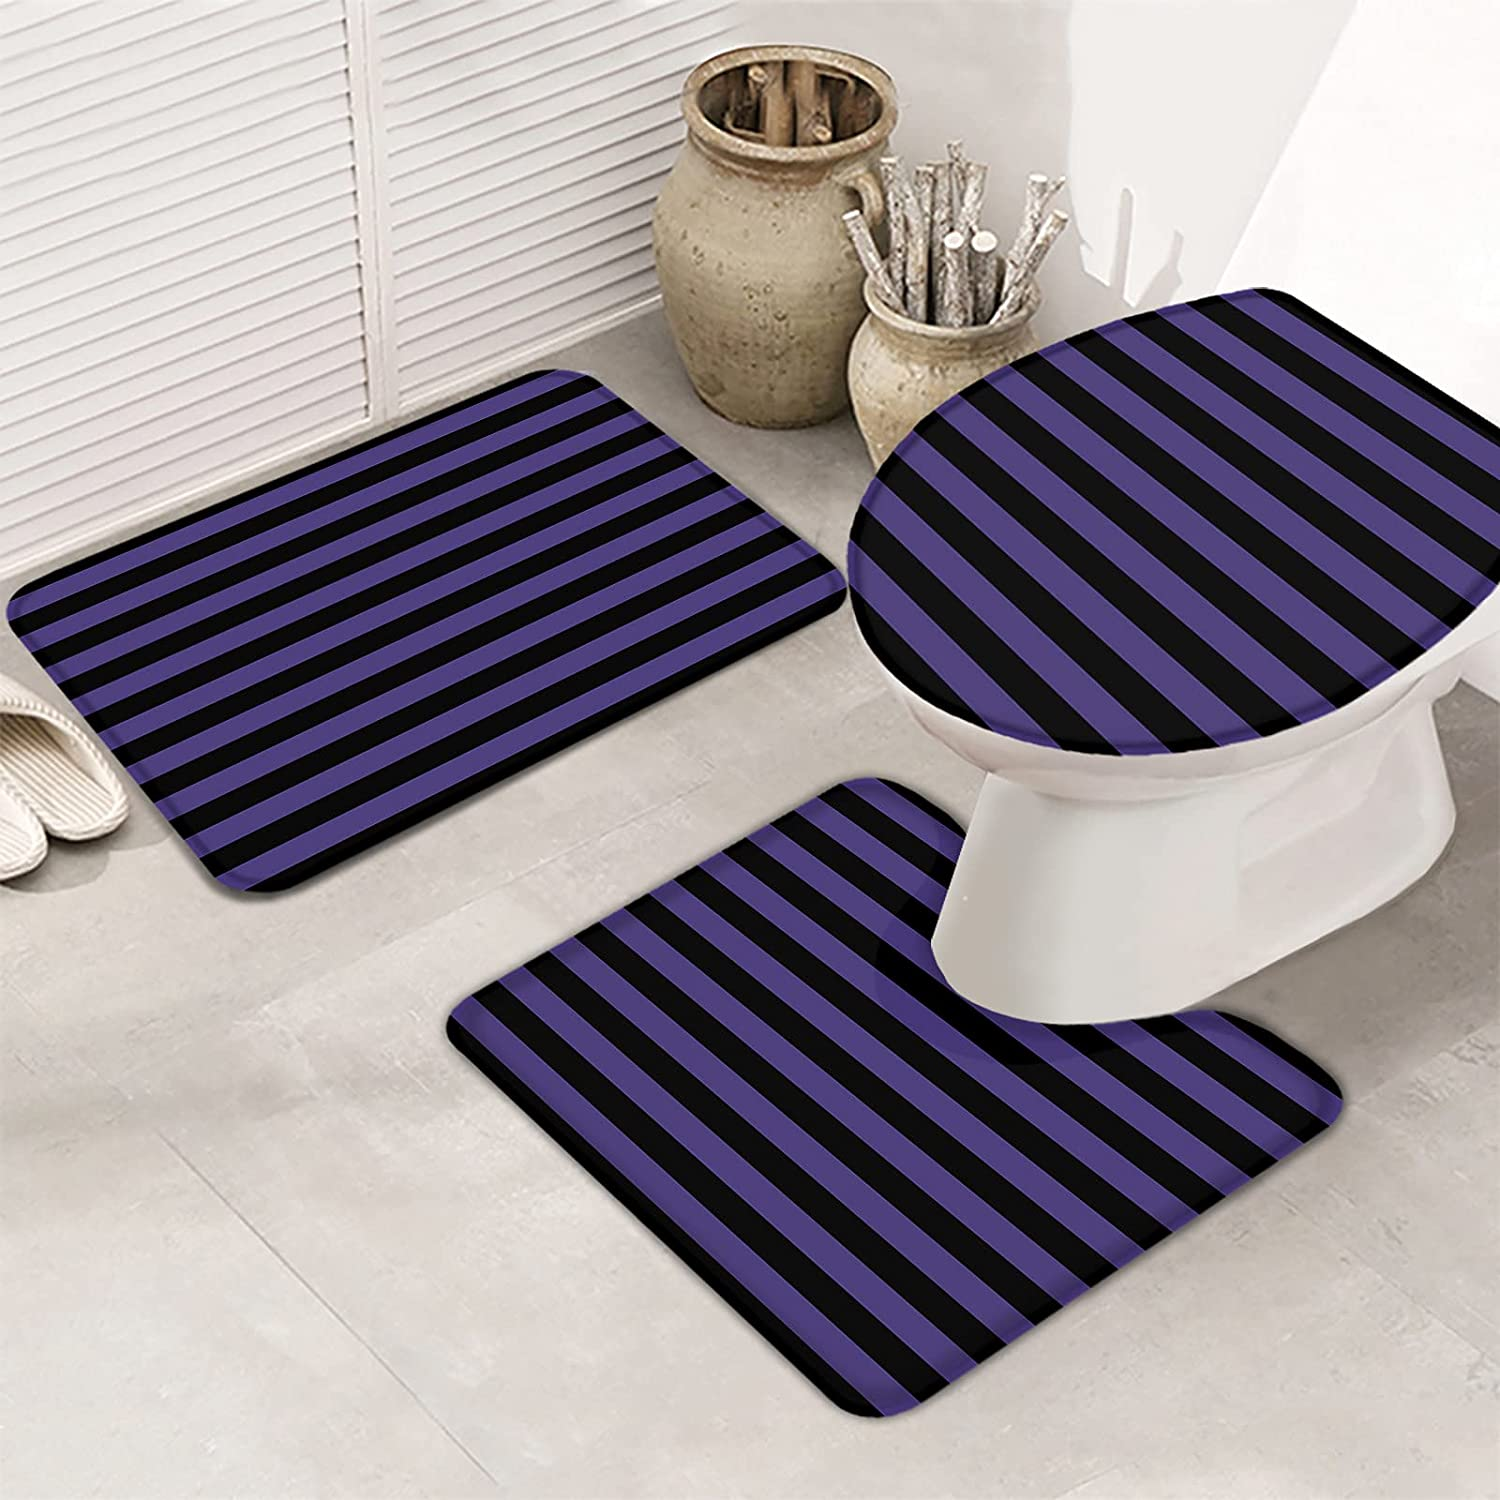 OneHoney Bathroom Rugs Set Halloween Purple Black Non-Sl 2021 spring Product and summer new Stripes